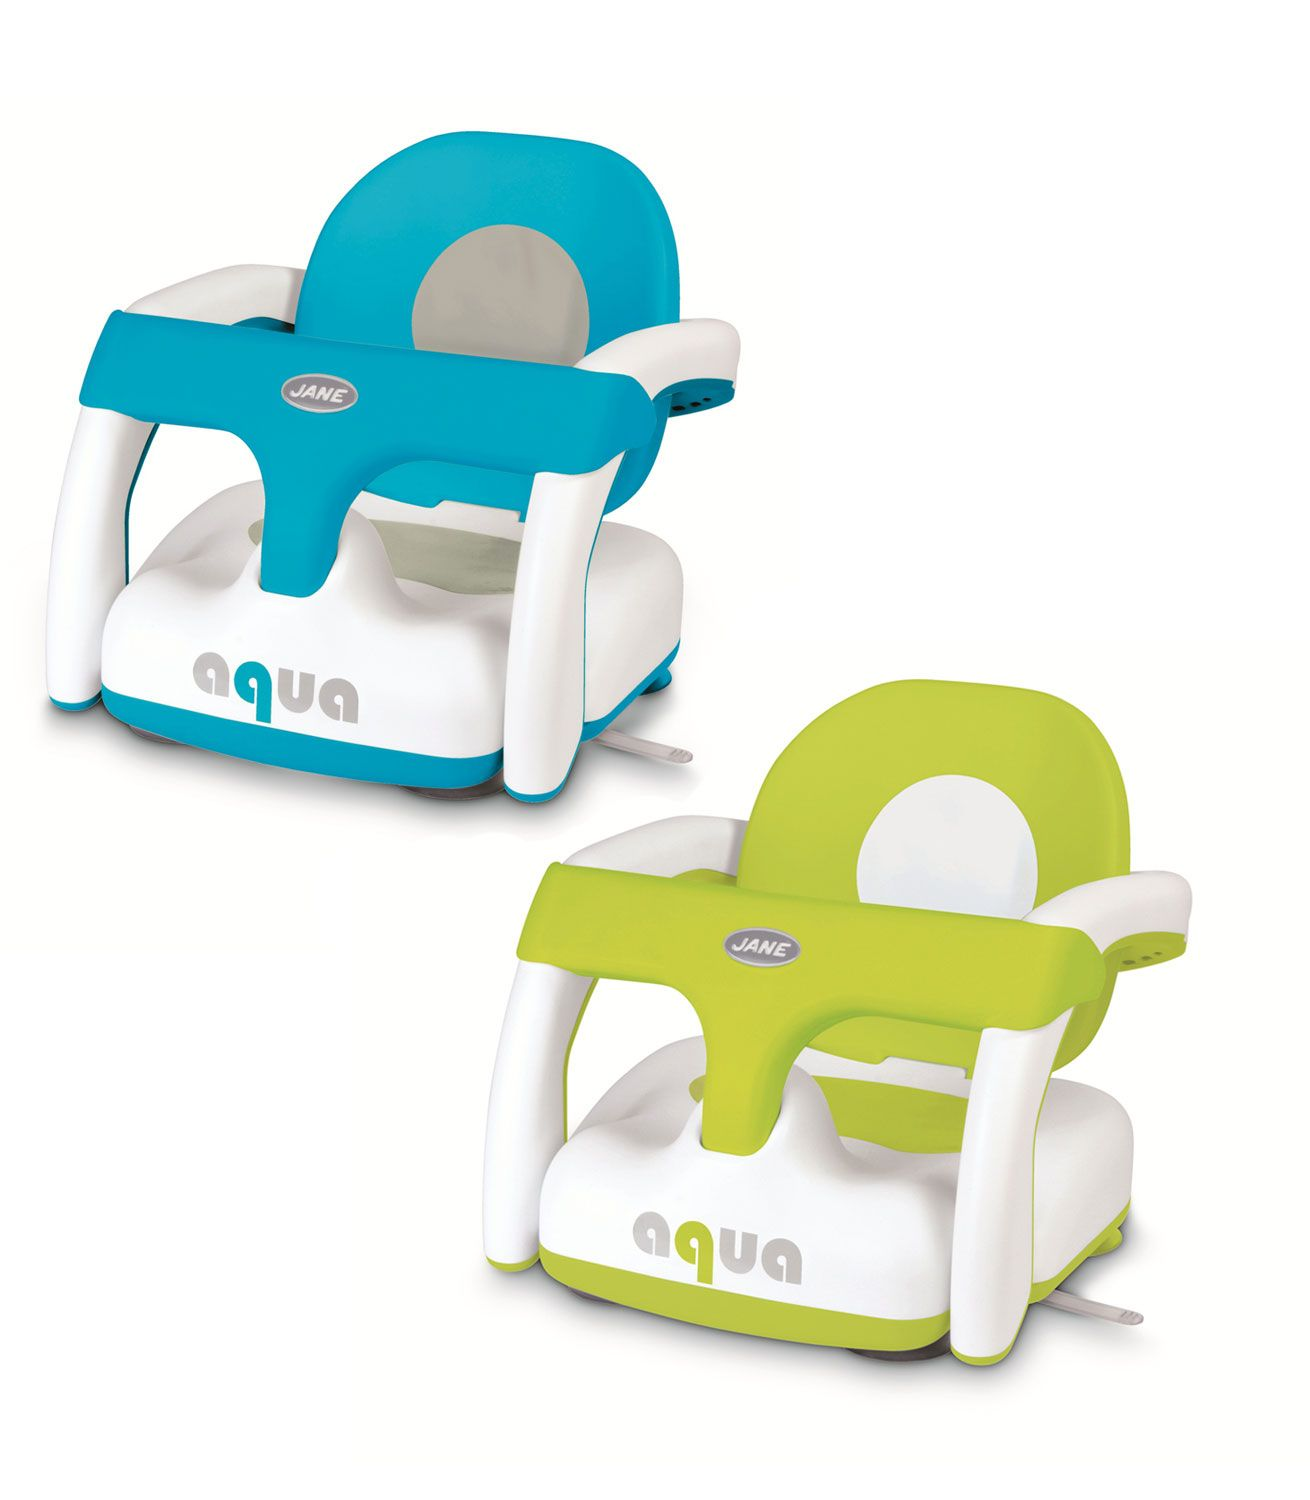 baby bath chairs woodworking plans for childrens table and buy your jane aqua 2 in 1 hammock looked these